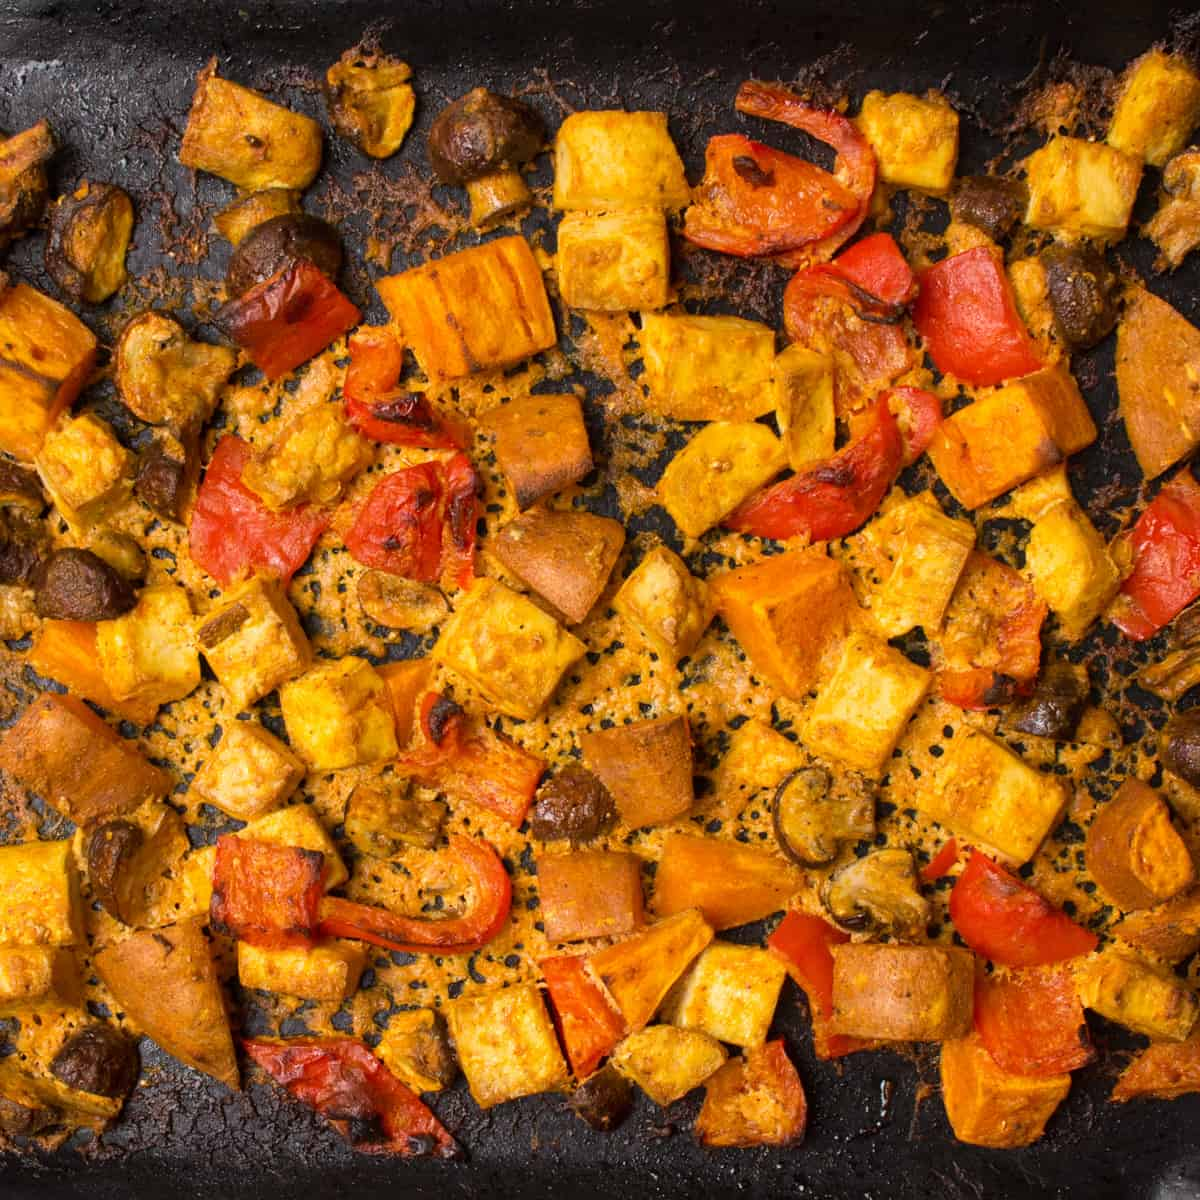 The marinated veggies and tofu have been roasted on a baking tray.